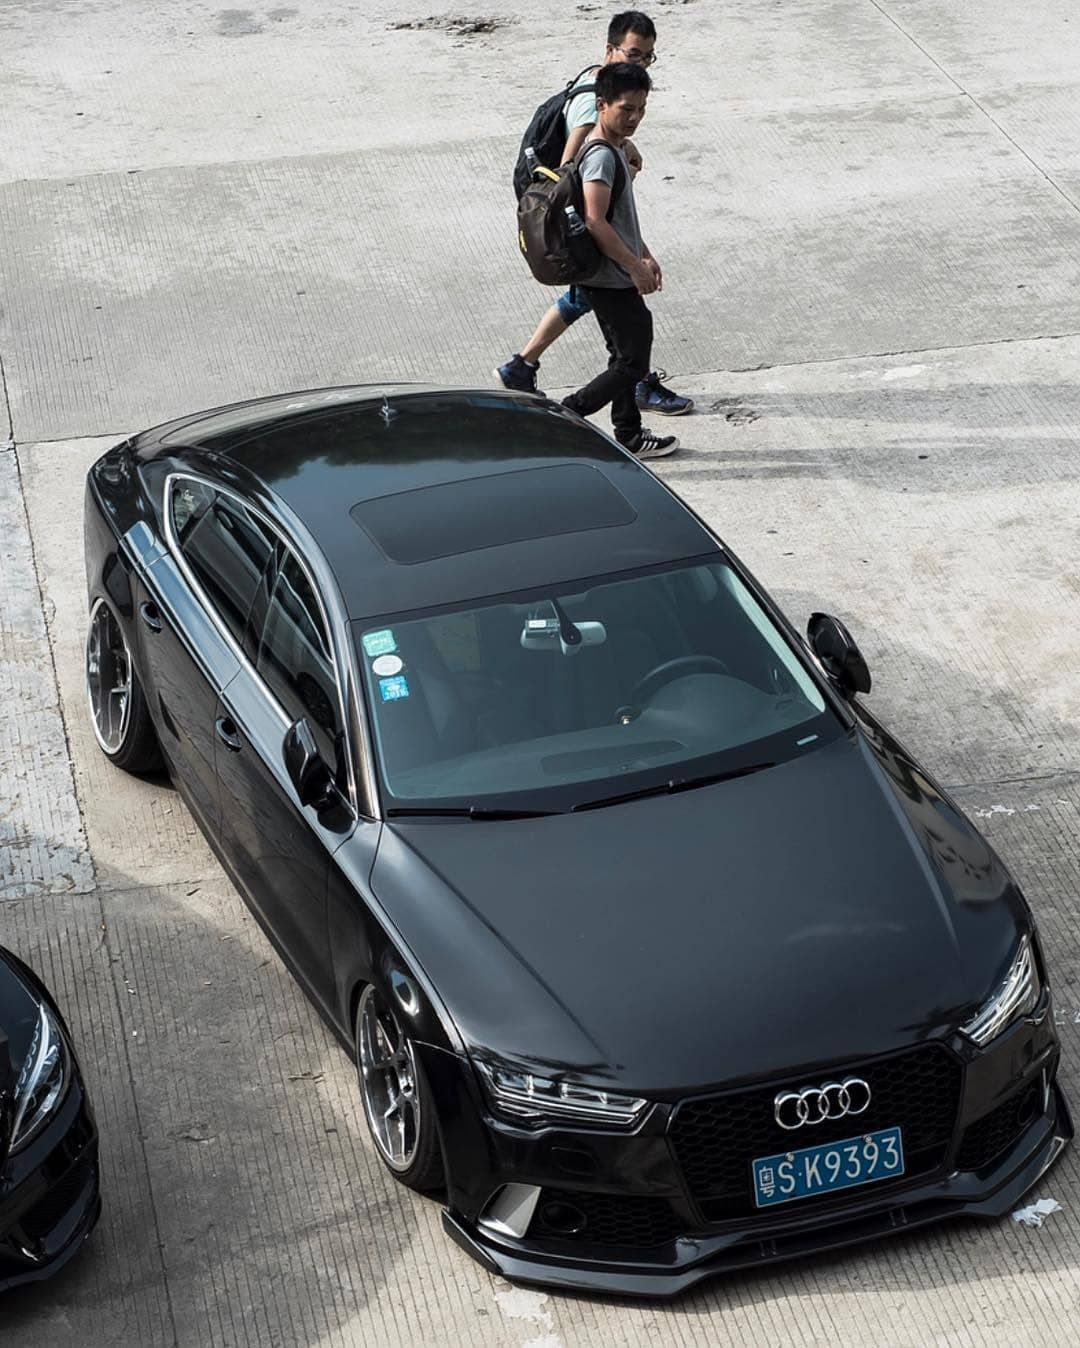 Audi A7 2020 Black Edition: Pin By Medikhalif On Garage In 2020 (With Images)